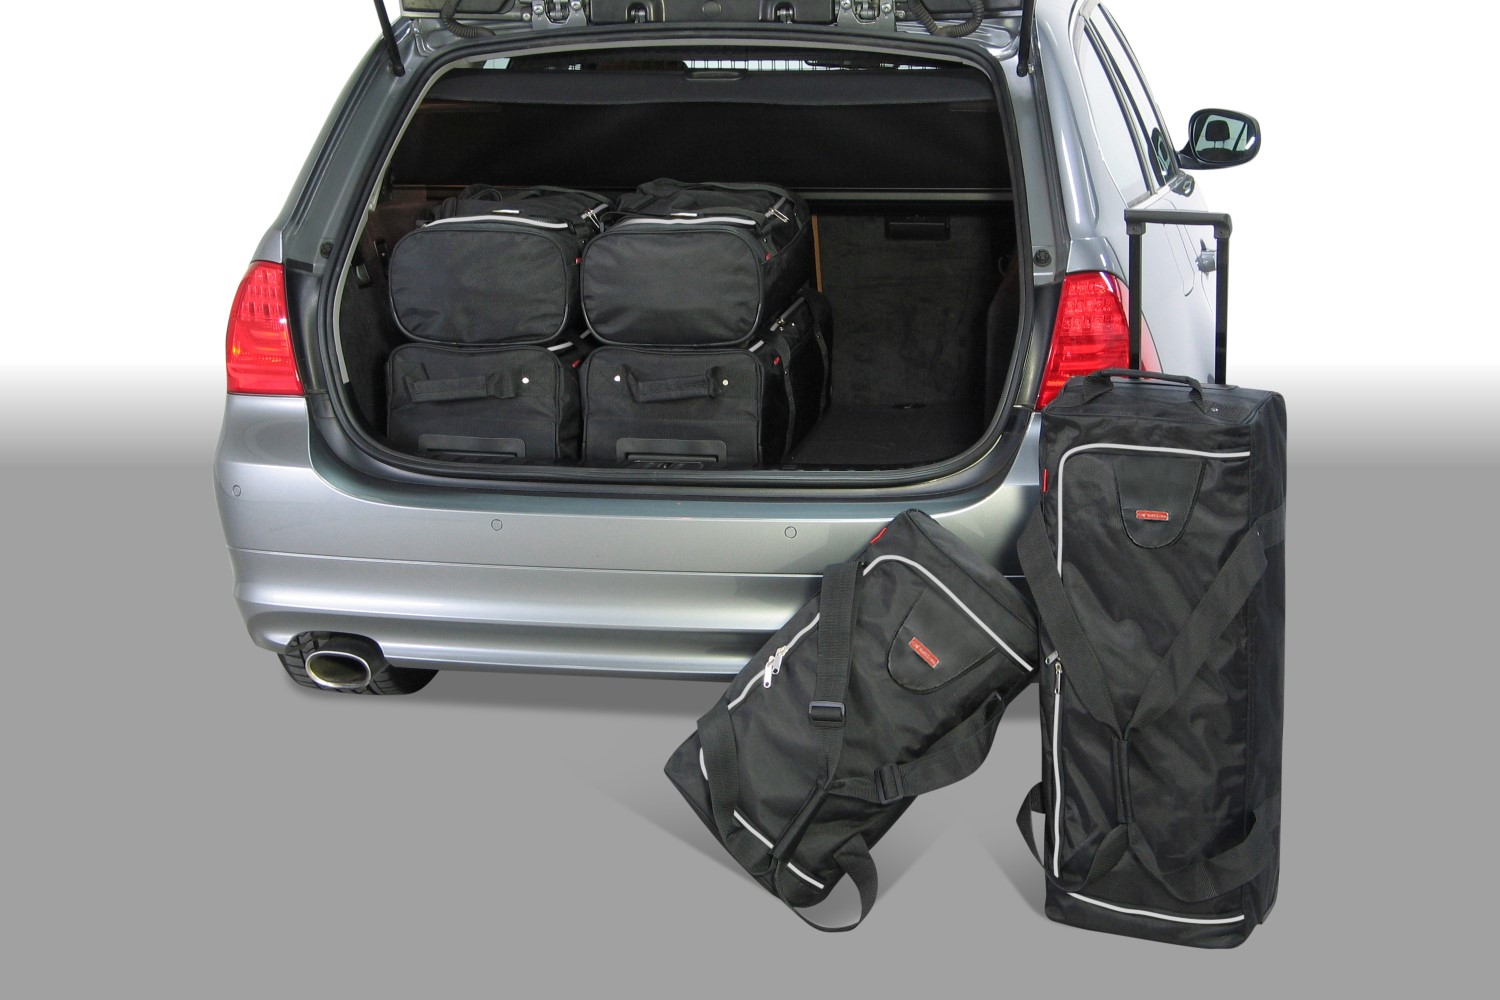 BMW 3 series Touring (E91) 2005-2012 Car-Bags.com travel bag set (1)